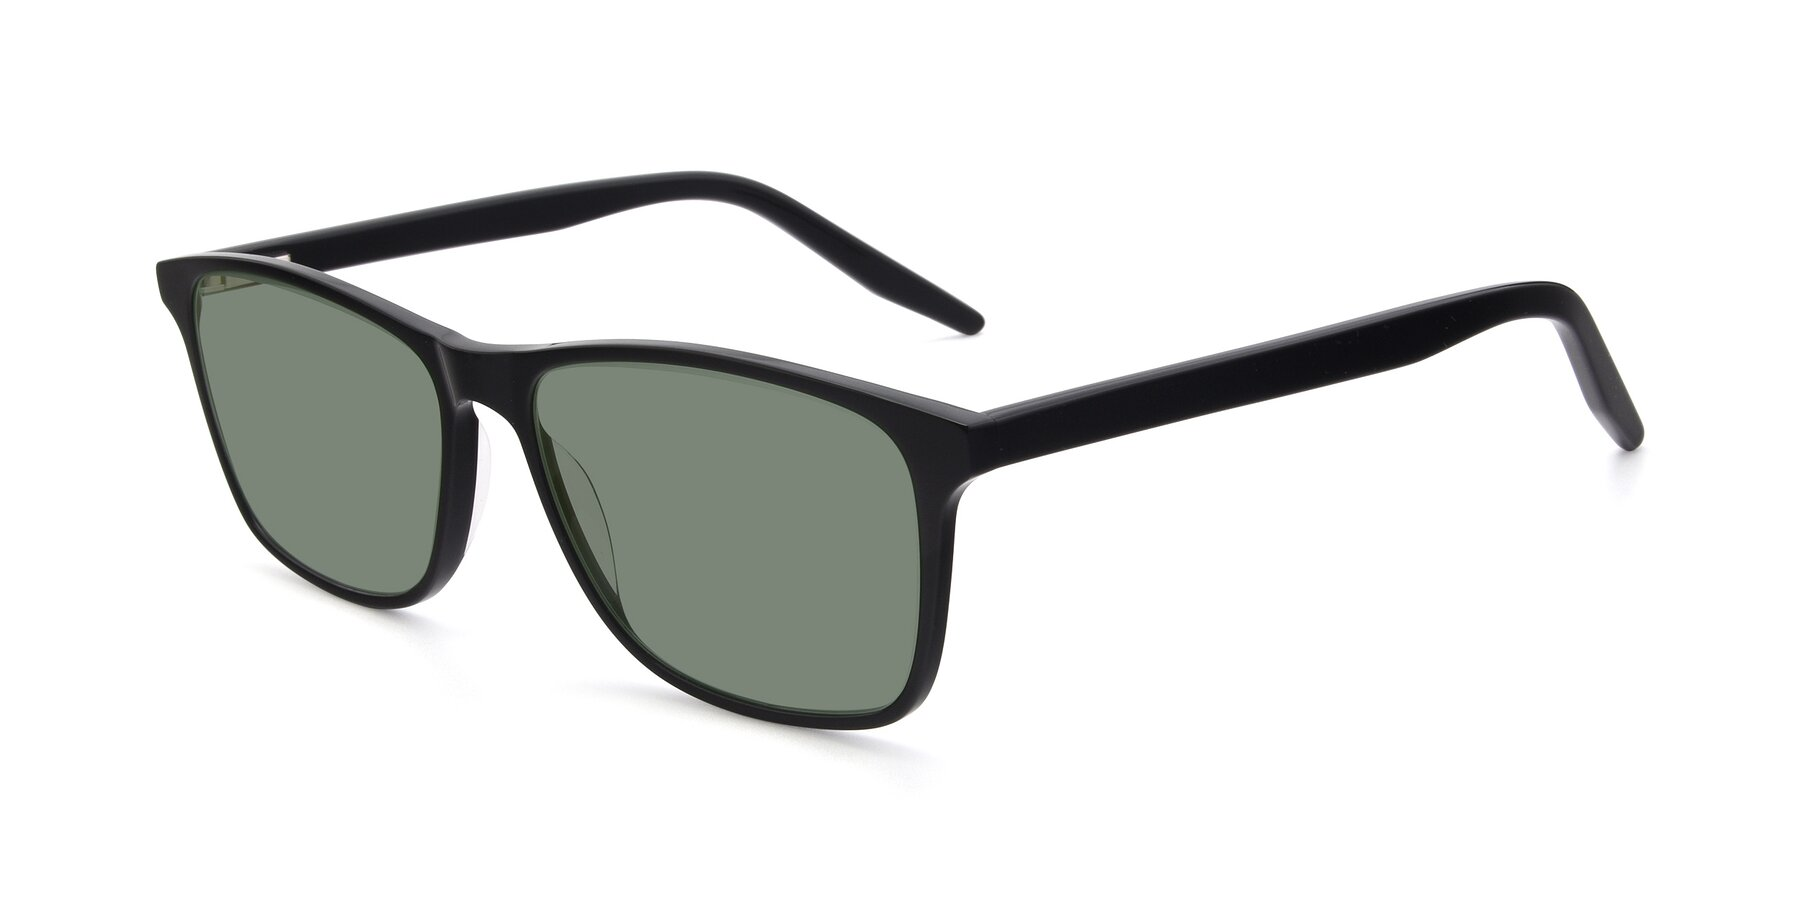 Angle of 17500 in Black with Medium Green Tinted Lenses